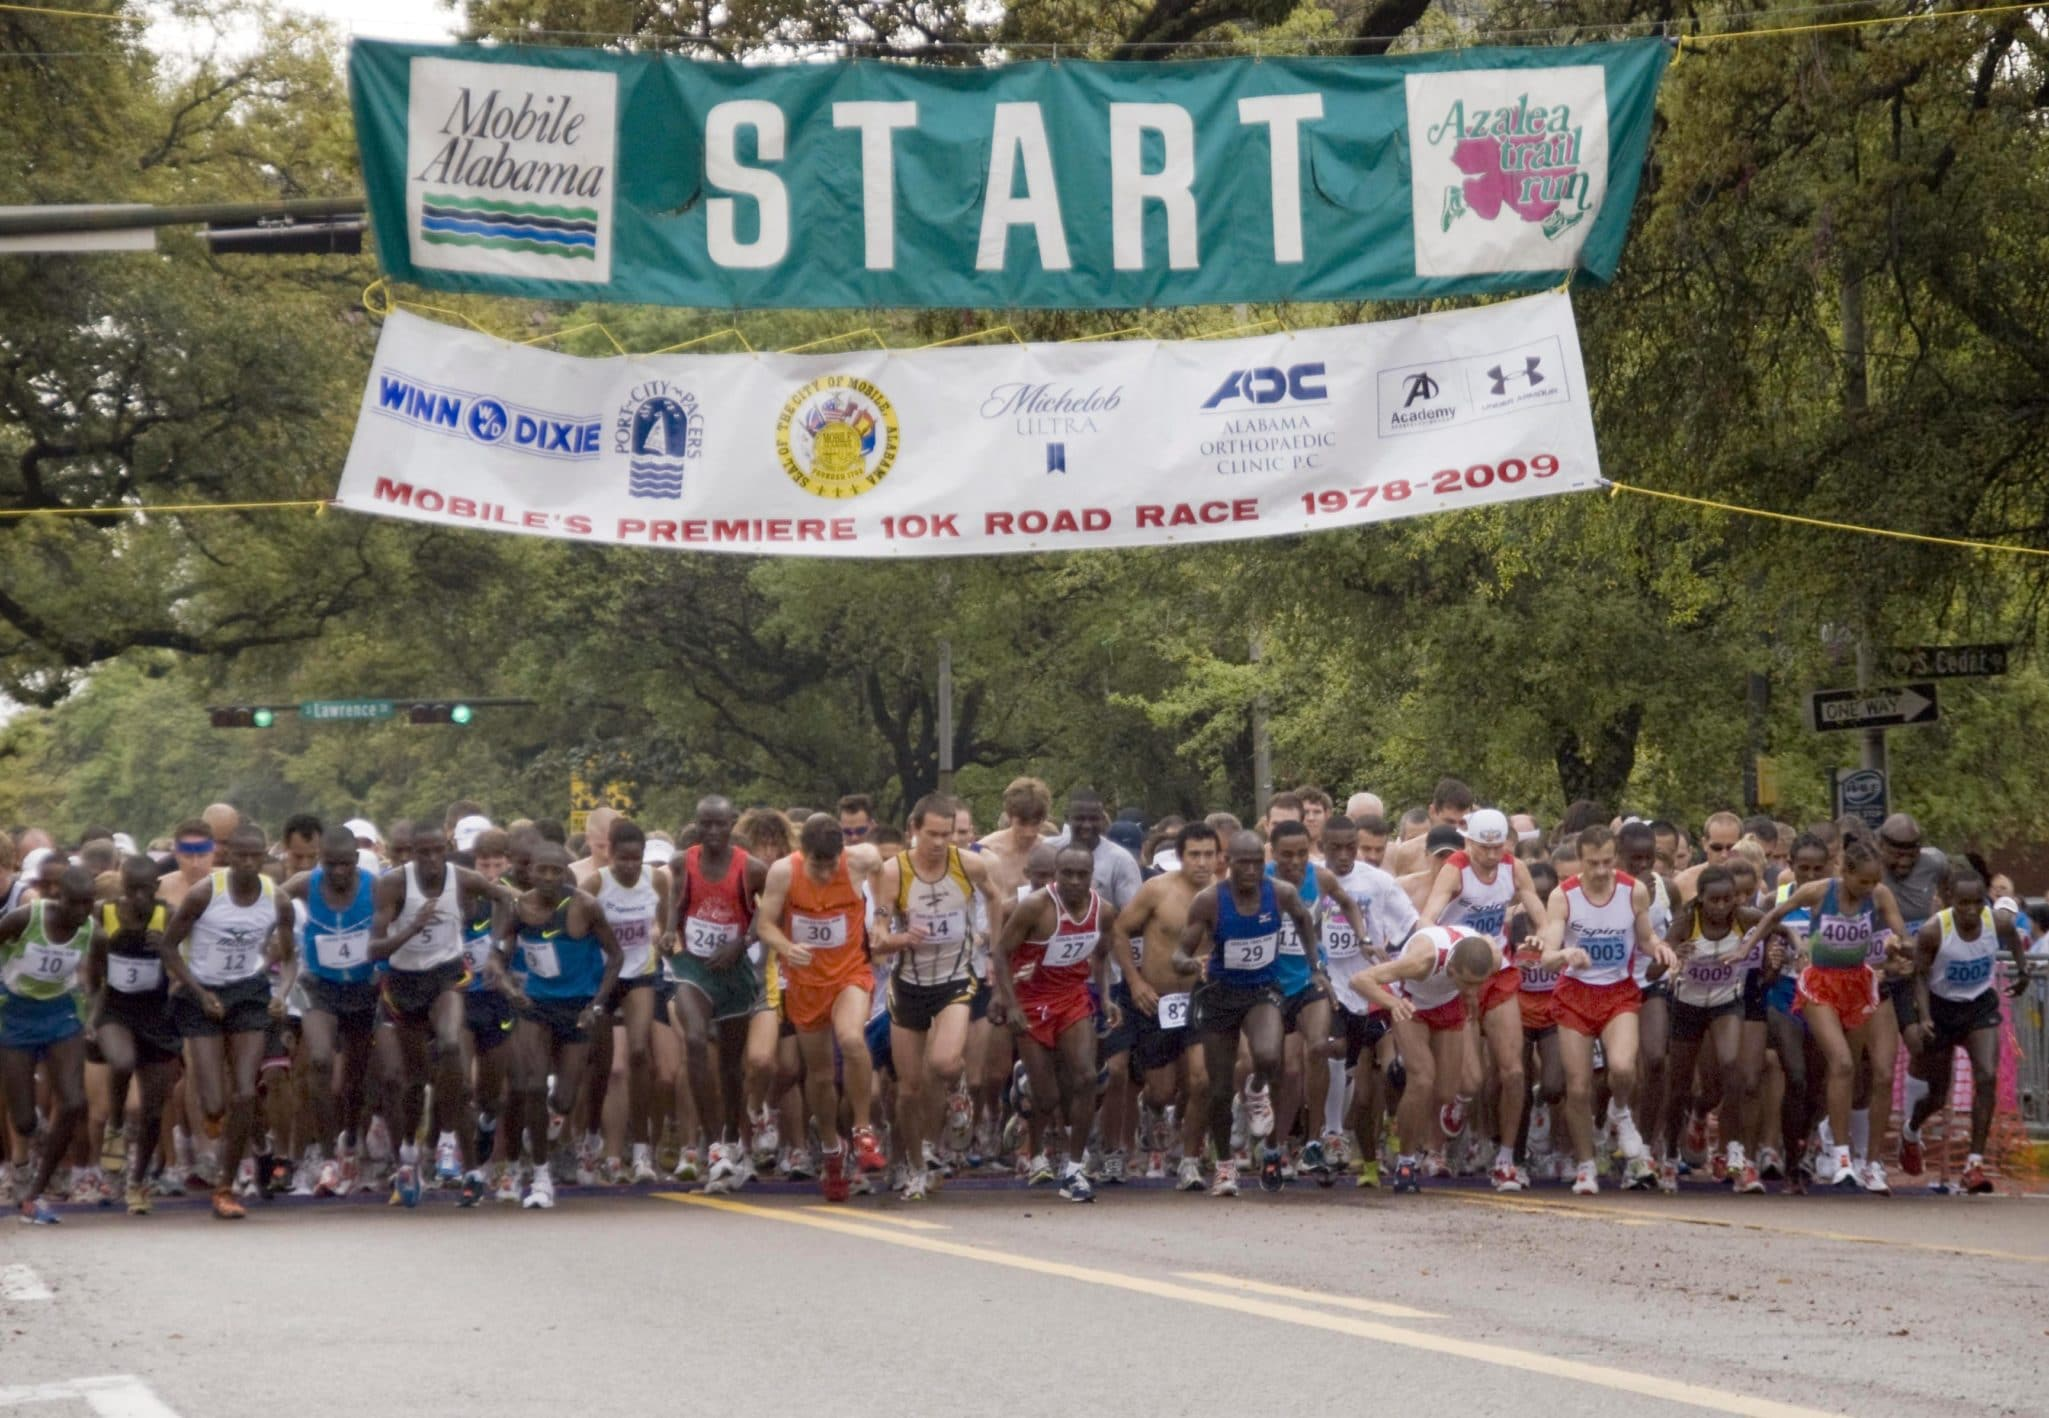 Azalea Trail Run threatened by rising costs – Lagniappe Mobile